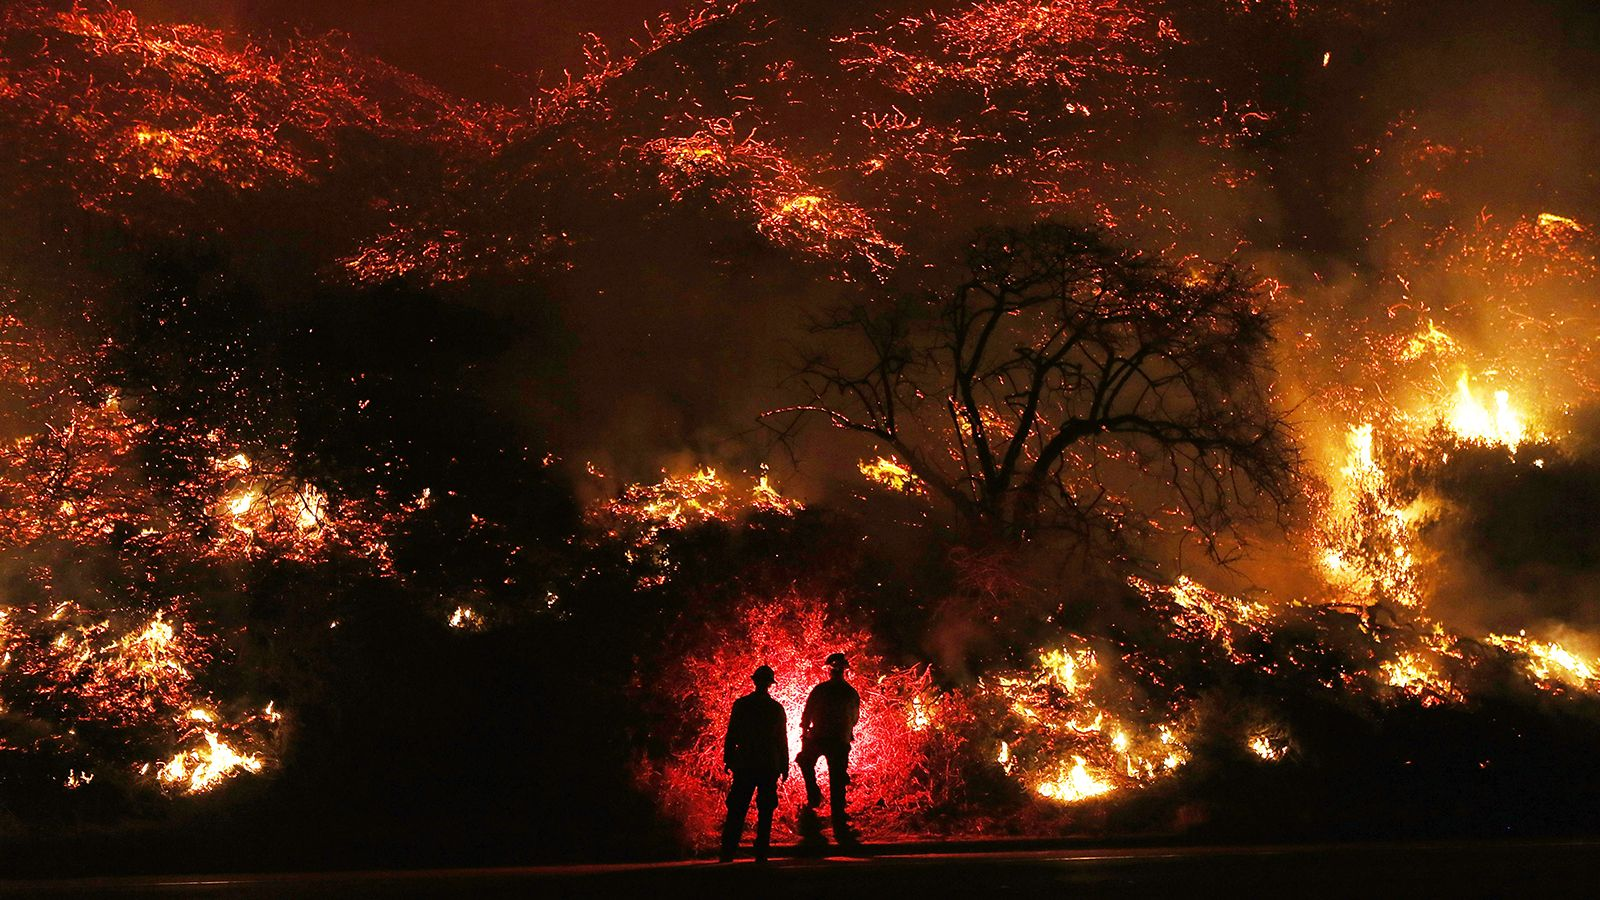 The first wintertime megafire in California history is